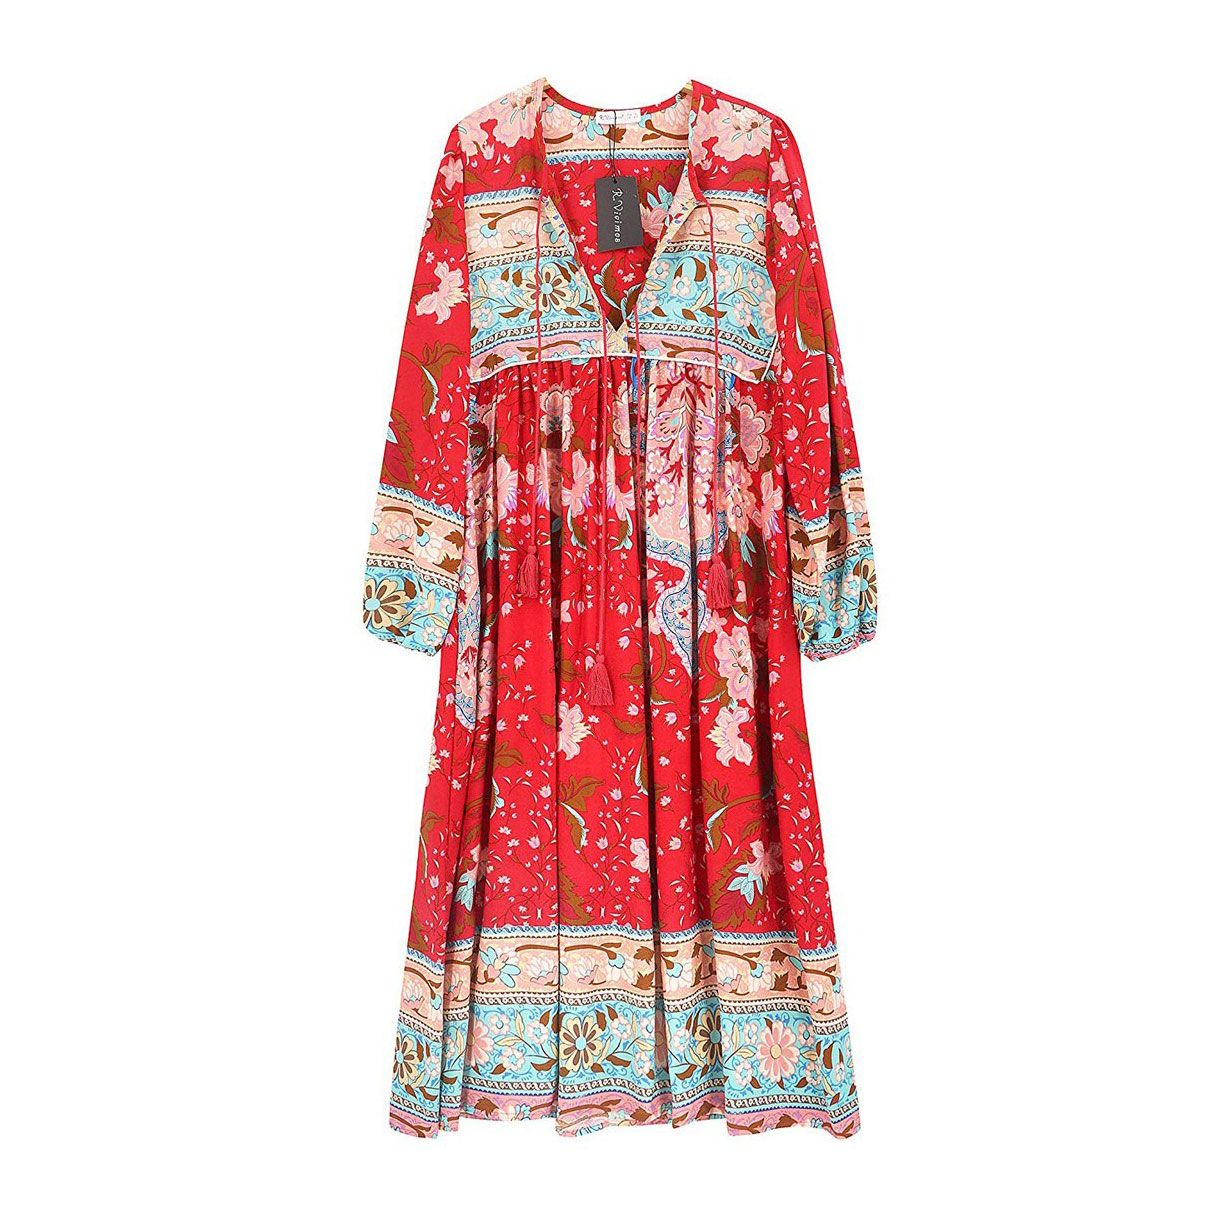 R.Vivimos Women Summer Cotton Floral Dress